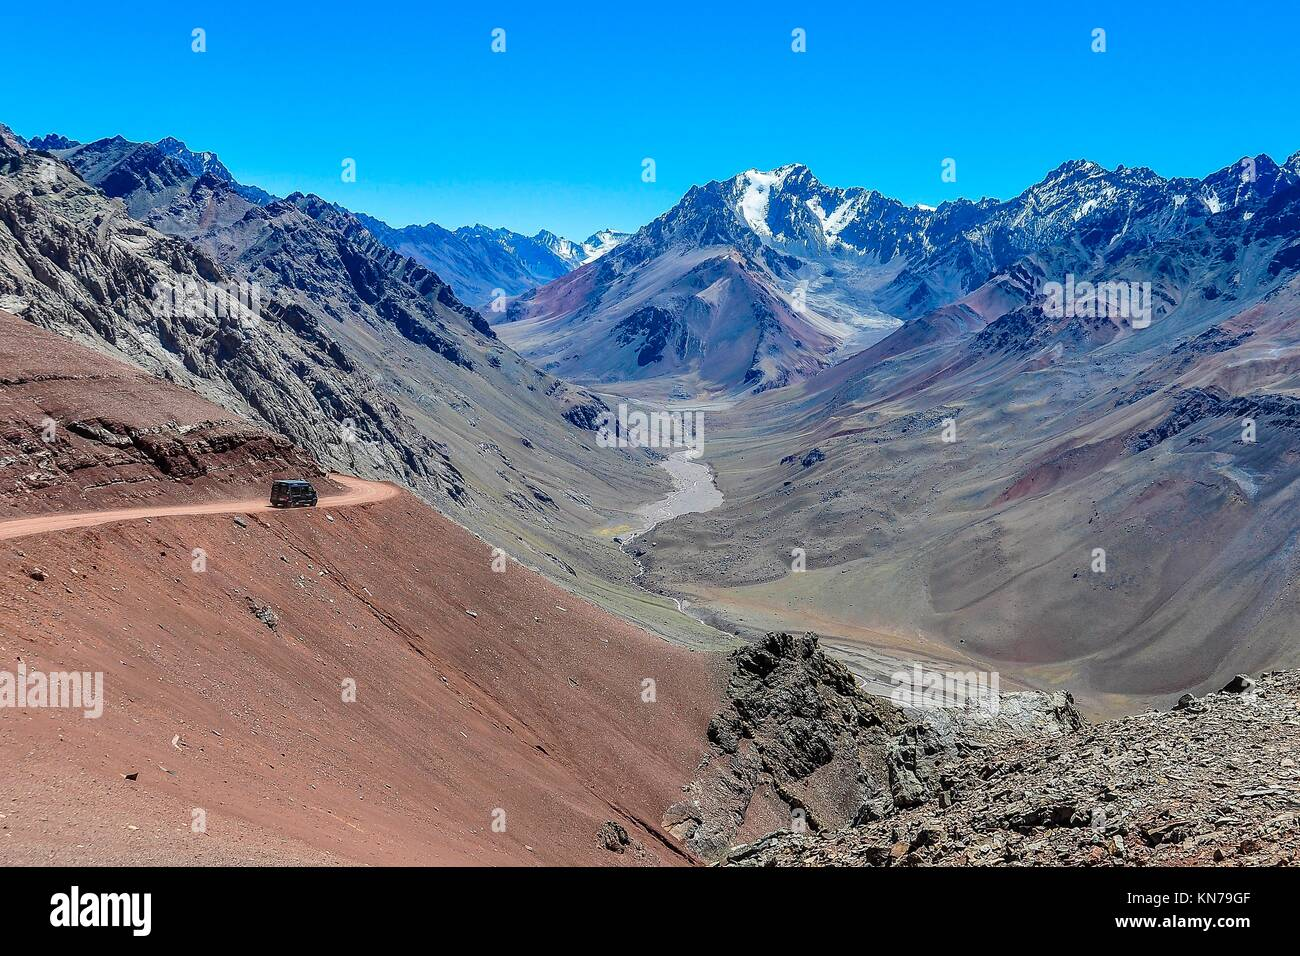 View of a valley in the Andes around Mendoza, Argentina. - Stock Image